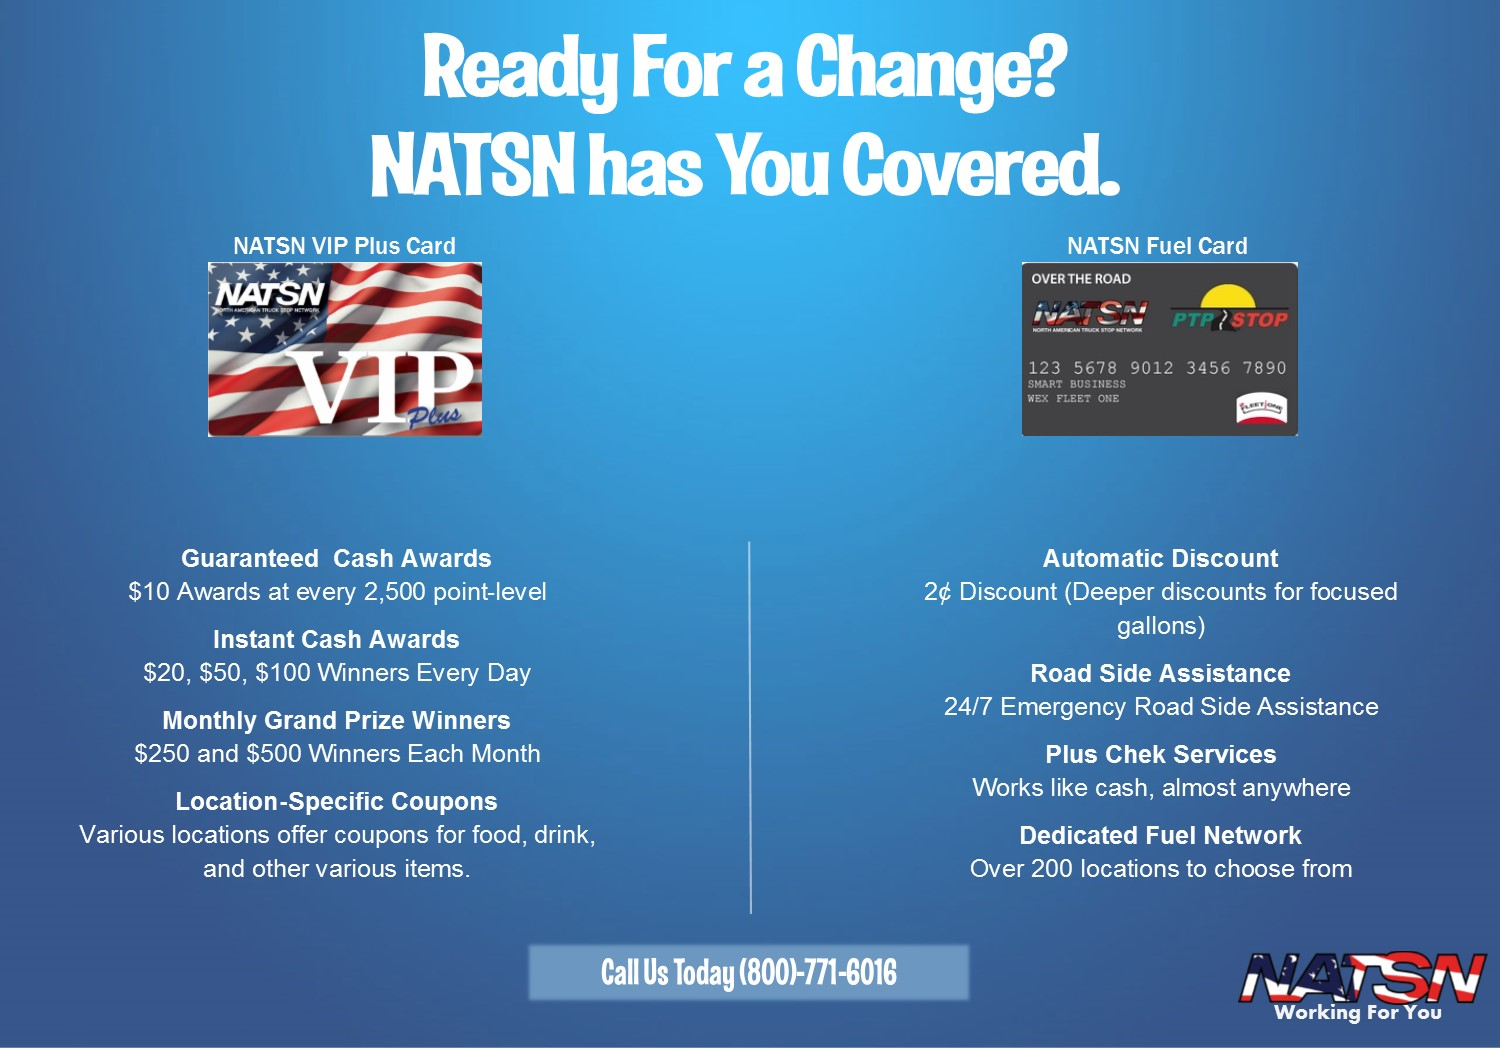 Fuel Card, Truck Driver, The Best Fuel Card, The Best Driver Loyalty Card, NATSN VIP Plus, Truck Stop, Discounts, NATSN, Fleet Card, Independent Truck Stop, Dedicated Network, Cash Prizes,